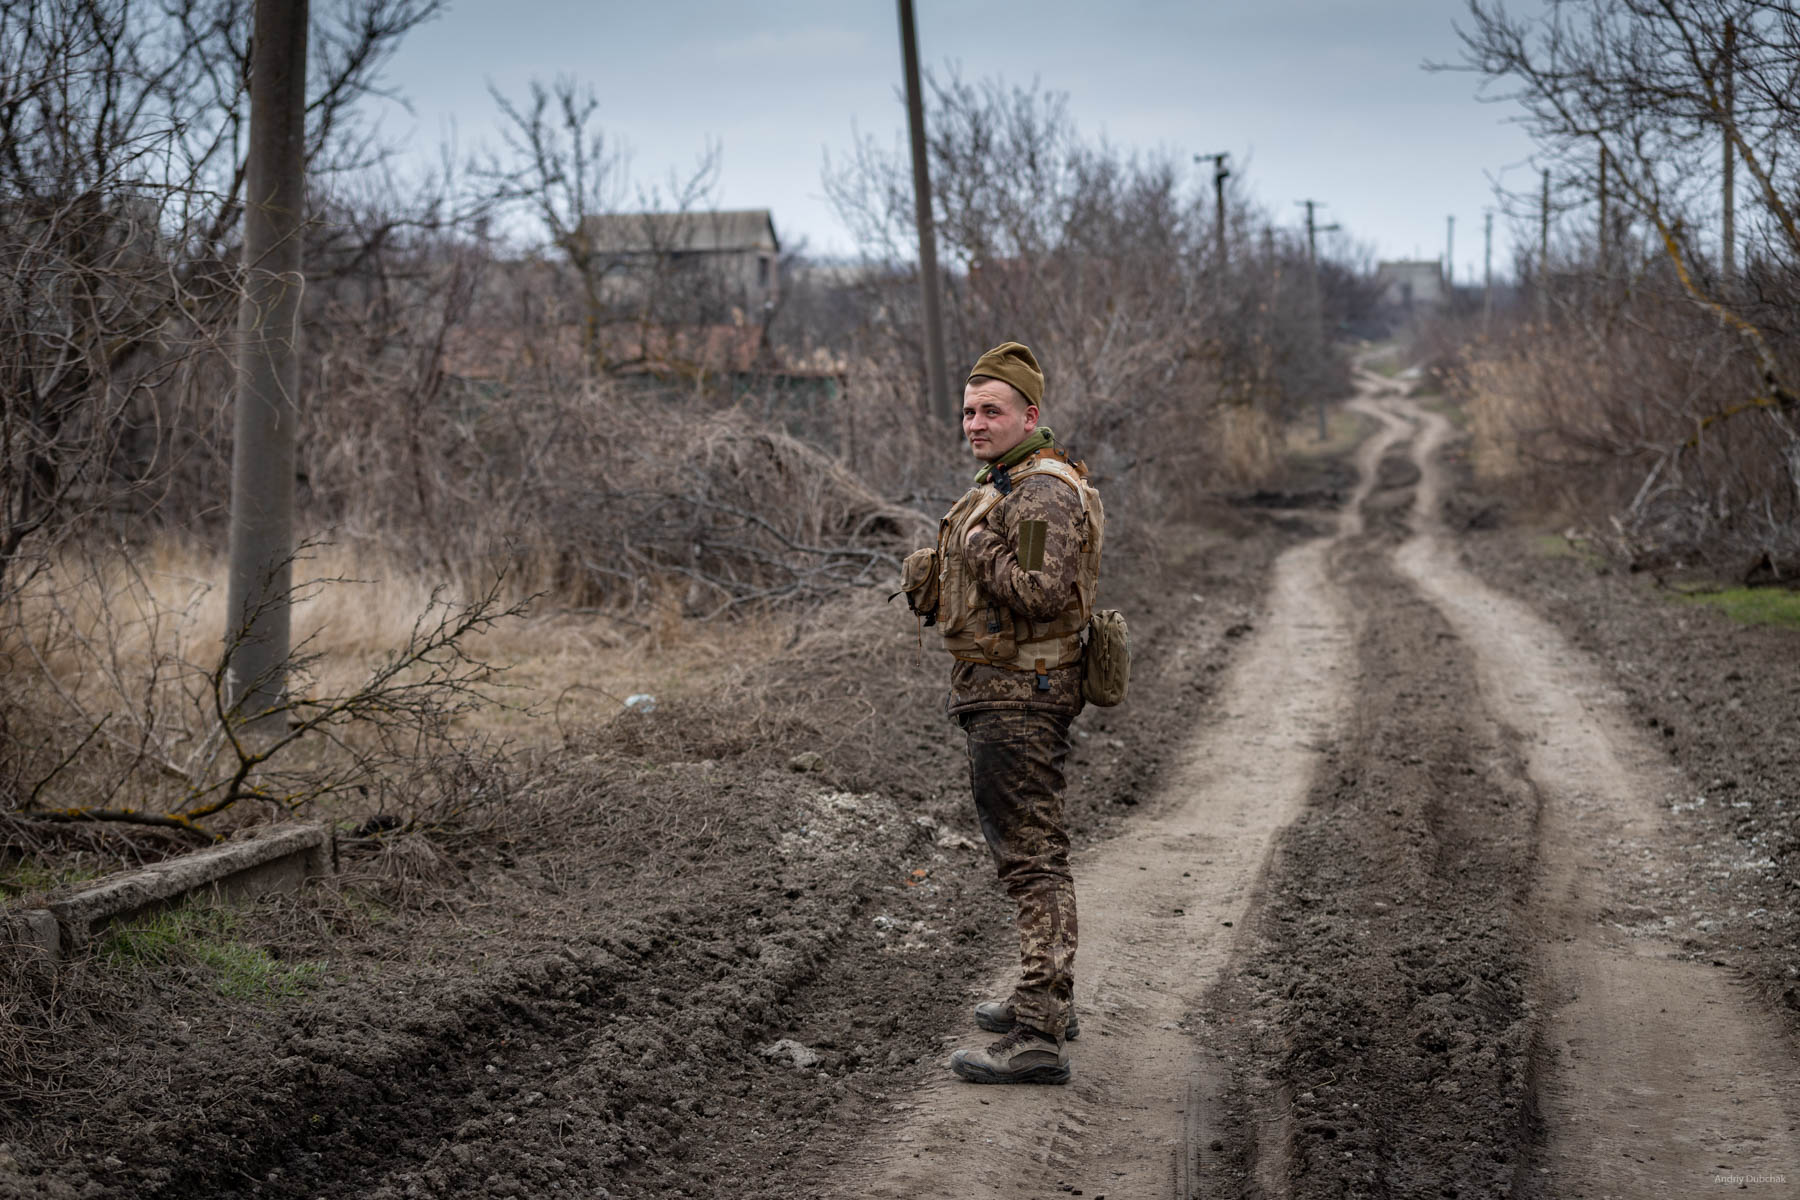 """Eduard. Eduard Yuriyevich Fedorov is a sailor of the Marine Corps of Ukraine. This photo I made in March, when he accompanied me from the front position to downtown Vodyane. """"Give me a couple of photos. As mementos"""". On the 27th of June, a hostile bullet hit him. For five days, doctors fought for his life, but ... failed. On the 2nd of July, his heart stopped. The soldier has a pregnant wife, with whom he married in late April. On September 17th, a daughter was born to him, who will know her father only in the photos ... I knew him a couple of hours. I will remember him my whole life. May he rest in peace. Photo - Vodyane, March 2018."""